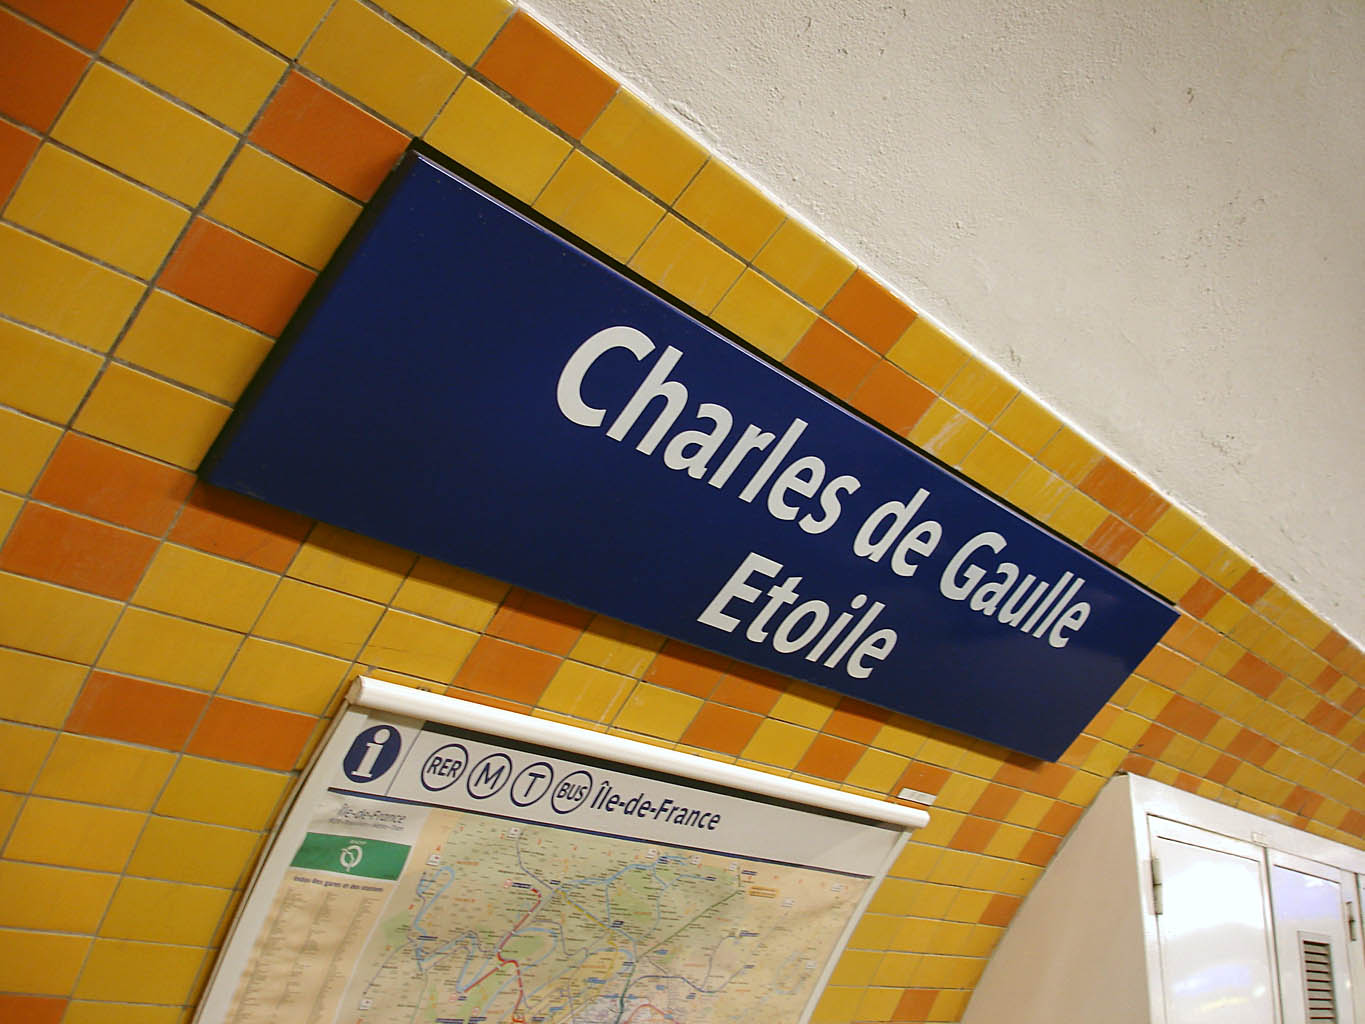 fichier metro de paris ligne 2 charles de gaulle etoile wikip dia. Black Bedroom Furniture Sets. Home Design Ideas